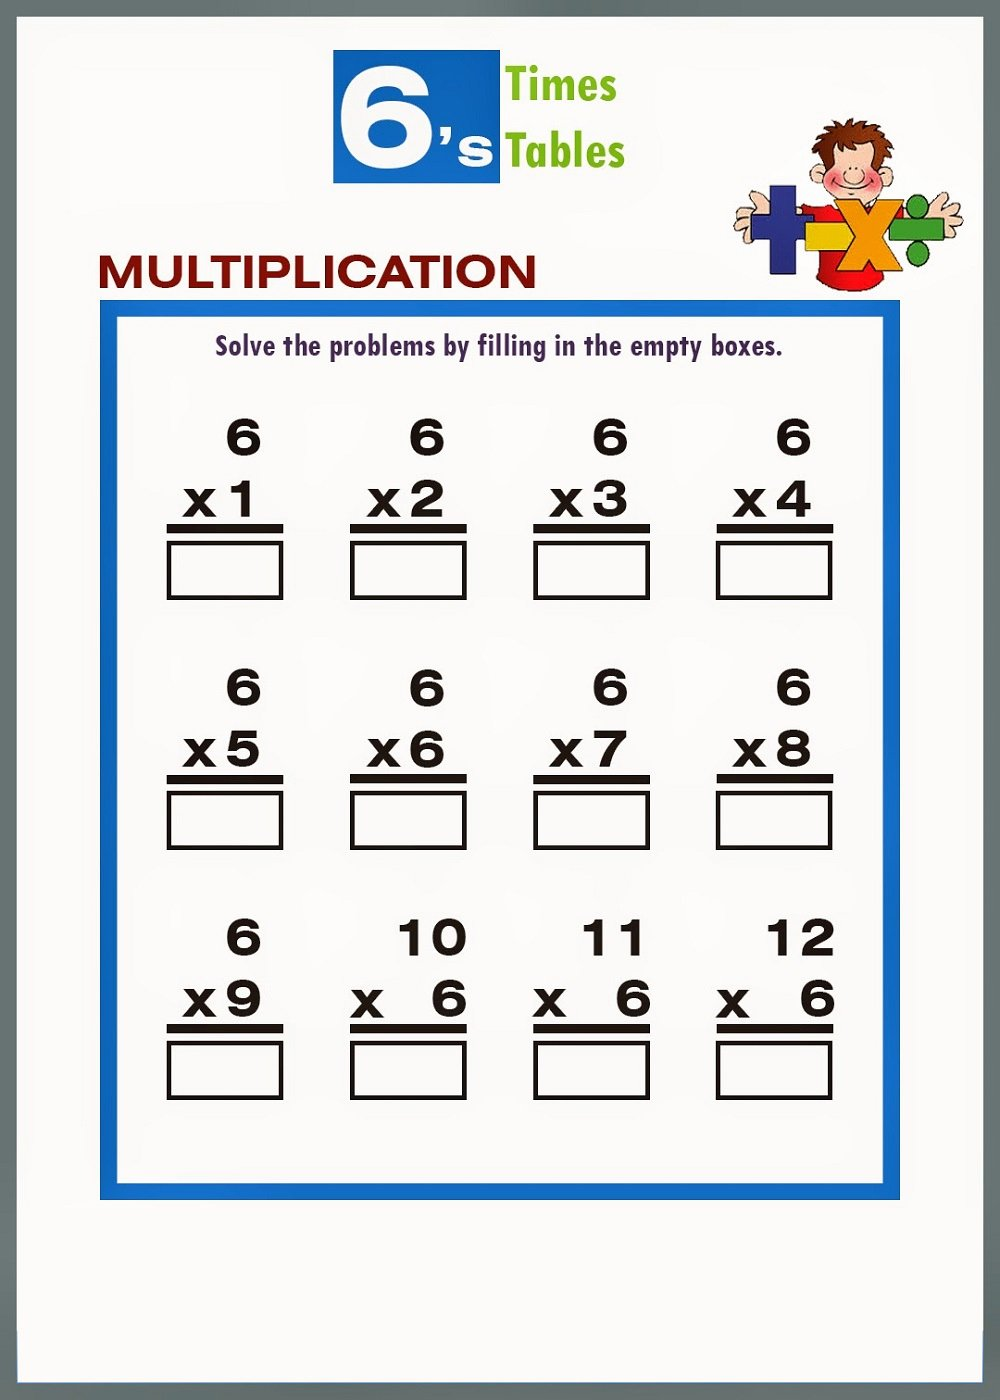 6 Times Table Worksheet Beautiful Printable 6 Times Table Worksheets